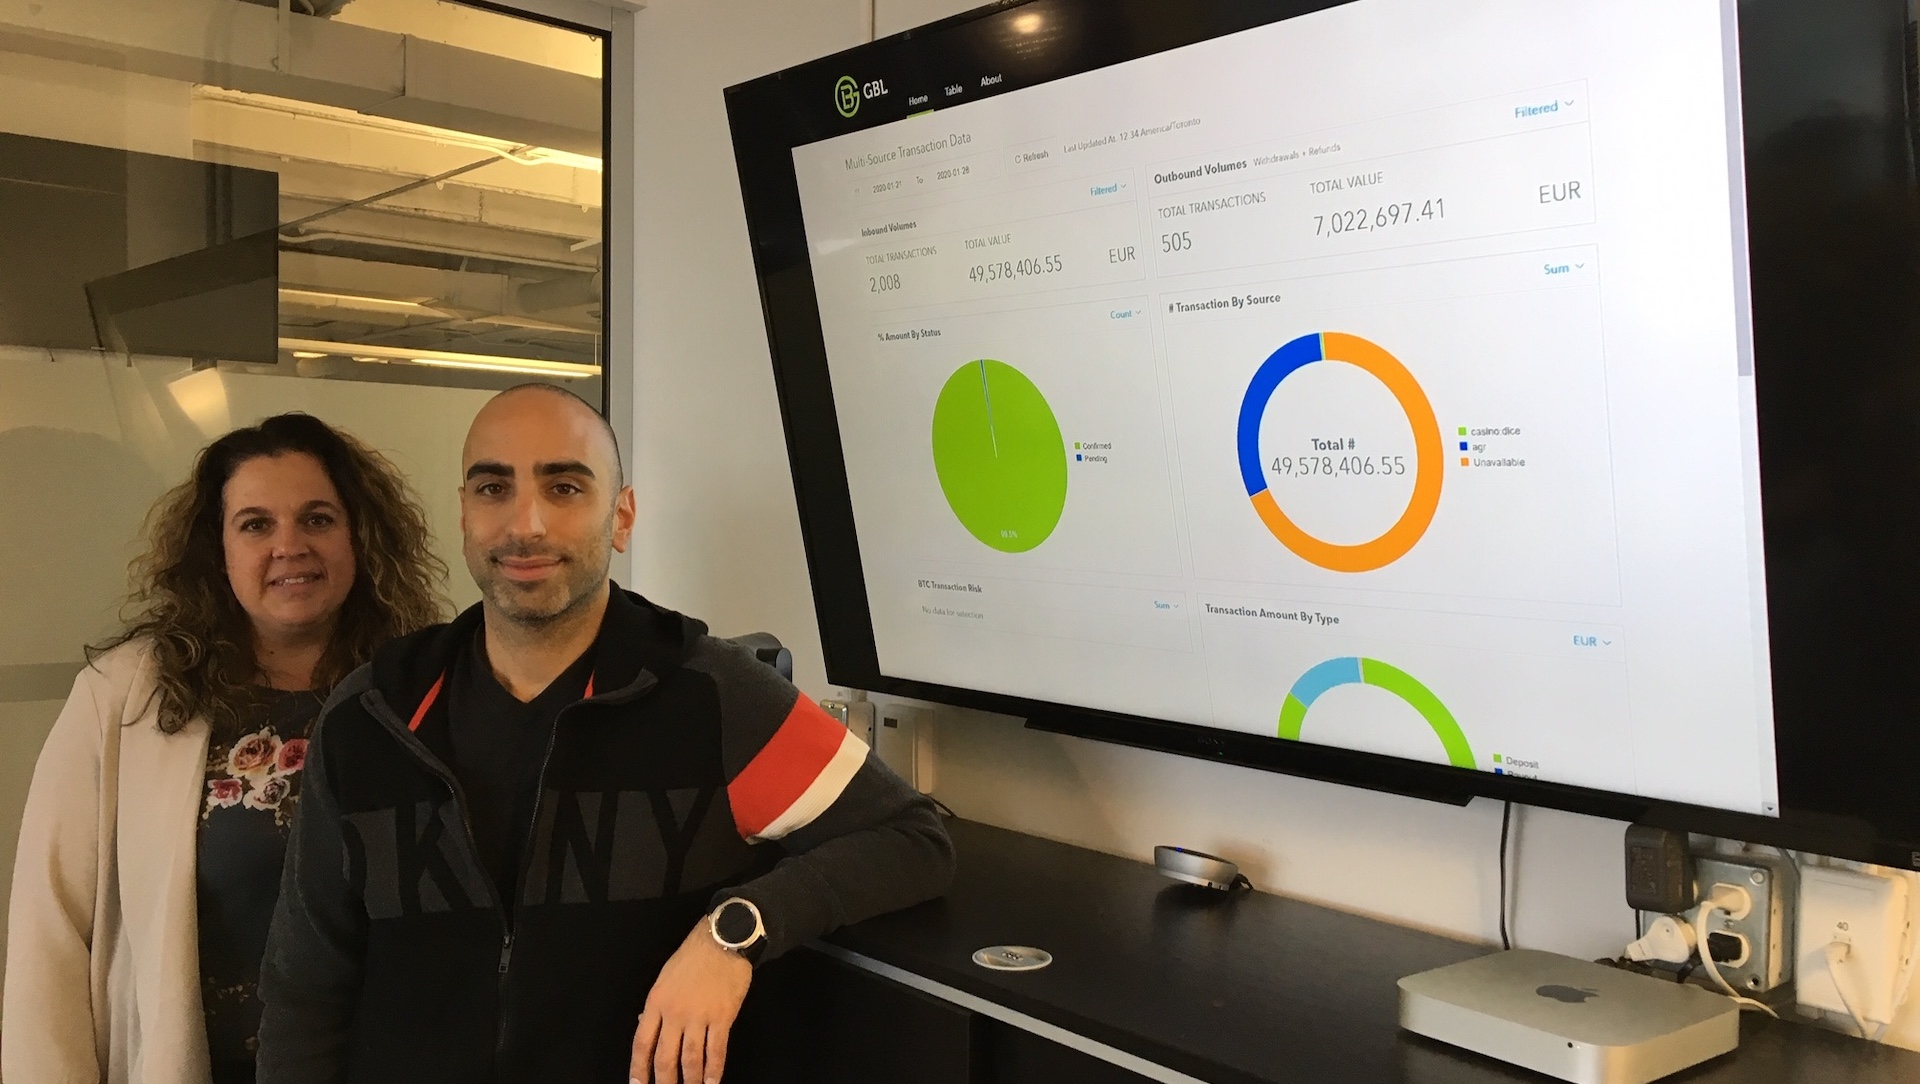 GBL's Jenn Carr and Cyrus Naini stand in front of a screen that shows the dashboard Zeitspace built.